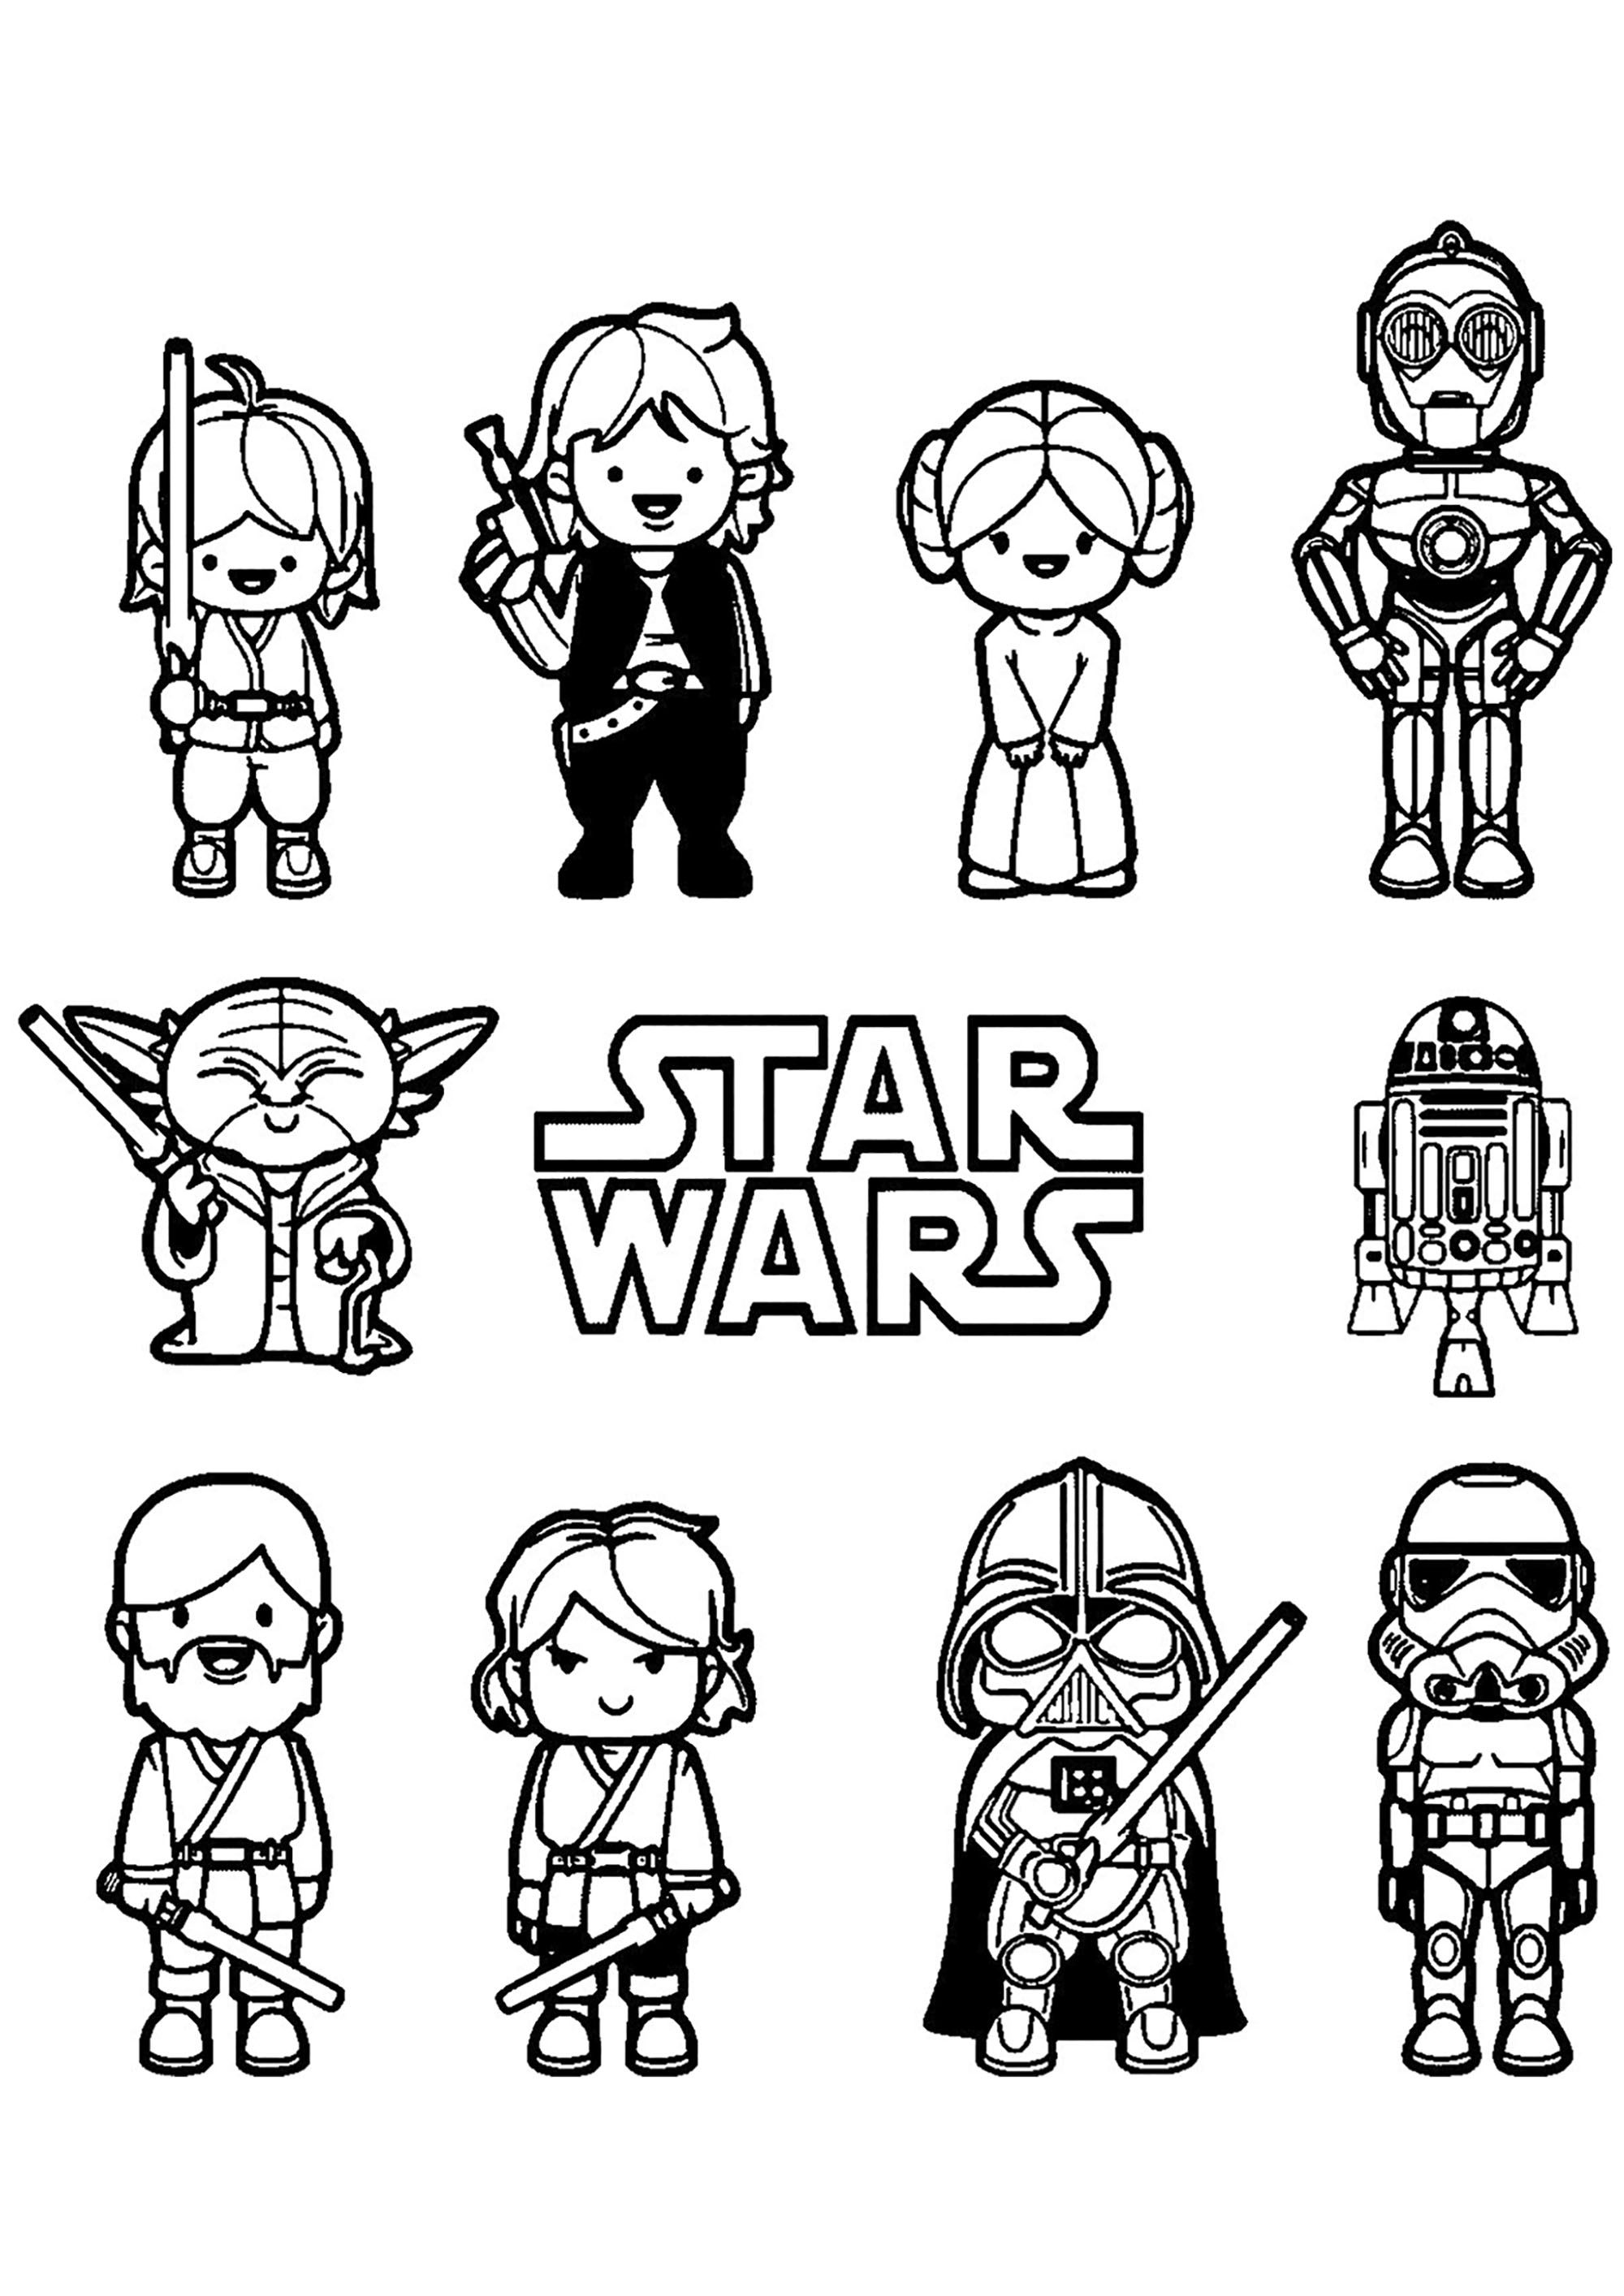 Funny Star Wars Coloring Page For Kids From The Gallery Star Wars In 2020 Star Wars Coloring Sheet Star Wars Cartoon Star Wars Colors